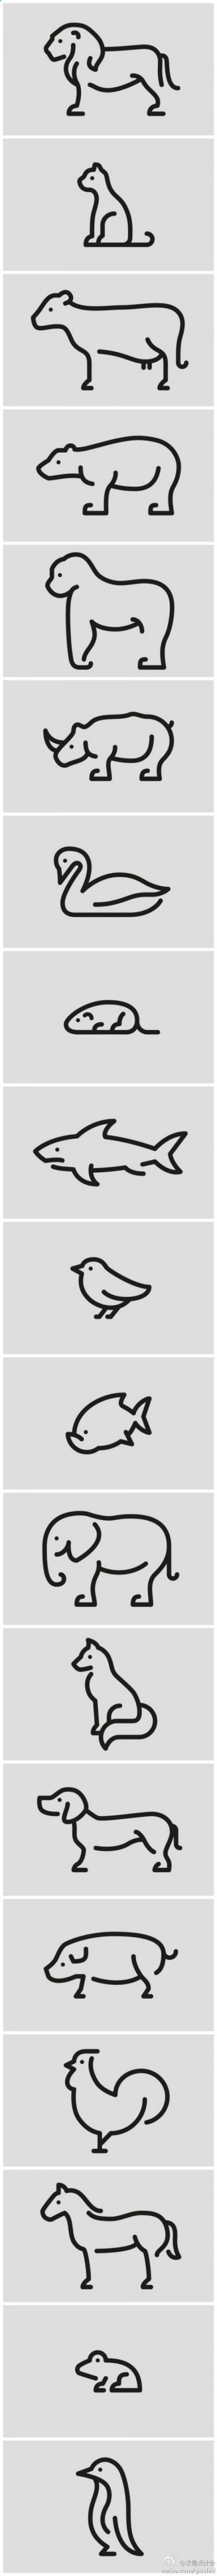 Various easy to draw animals.